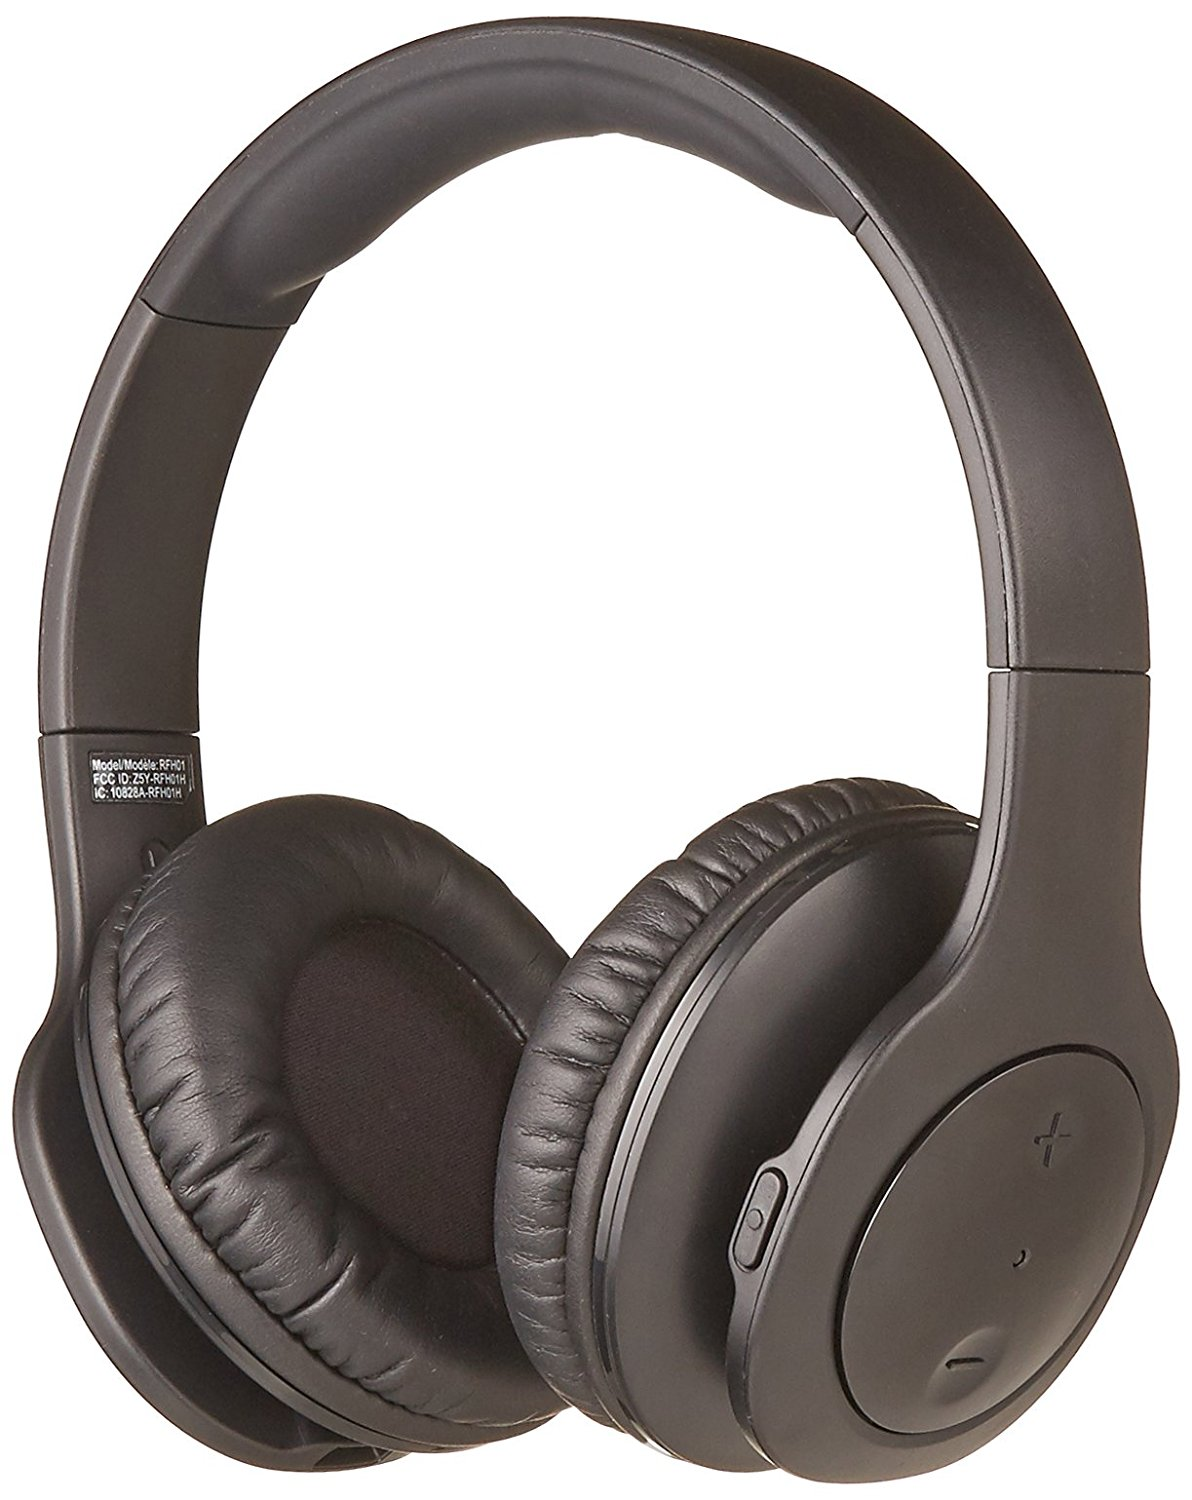 AmazonBasics Over-Ear Wireless RF Headphones